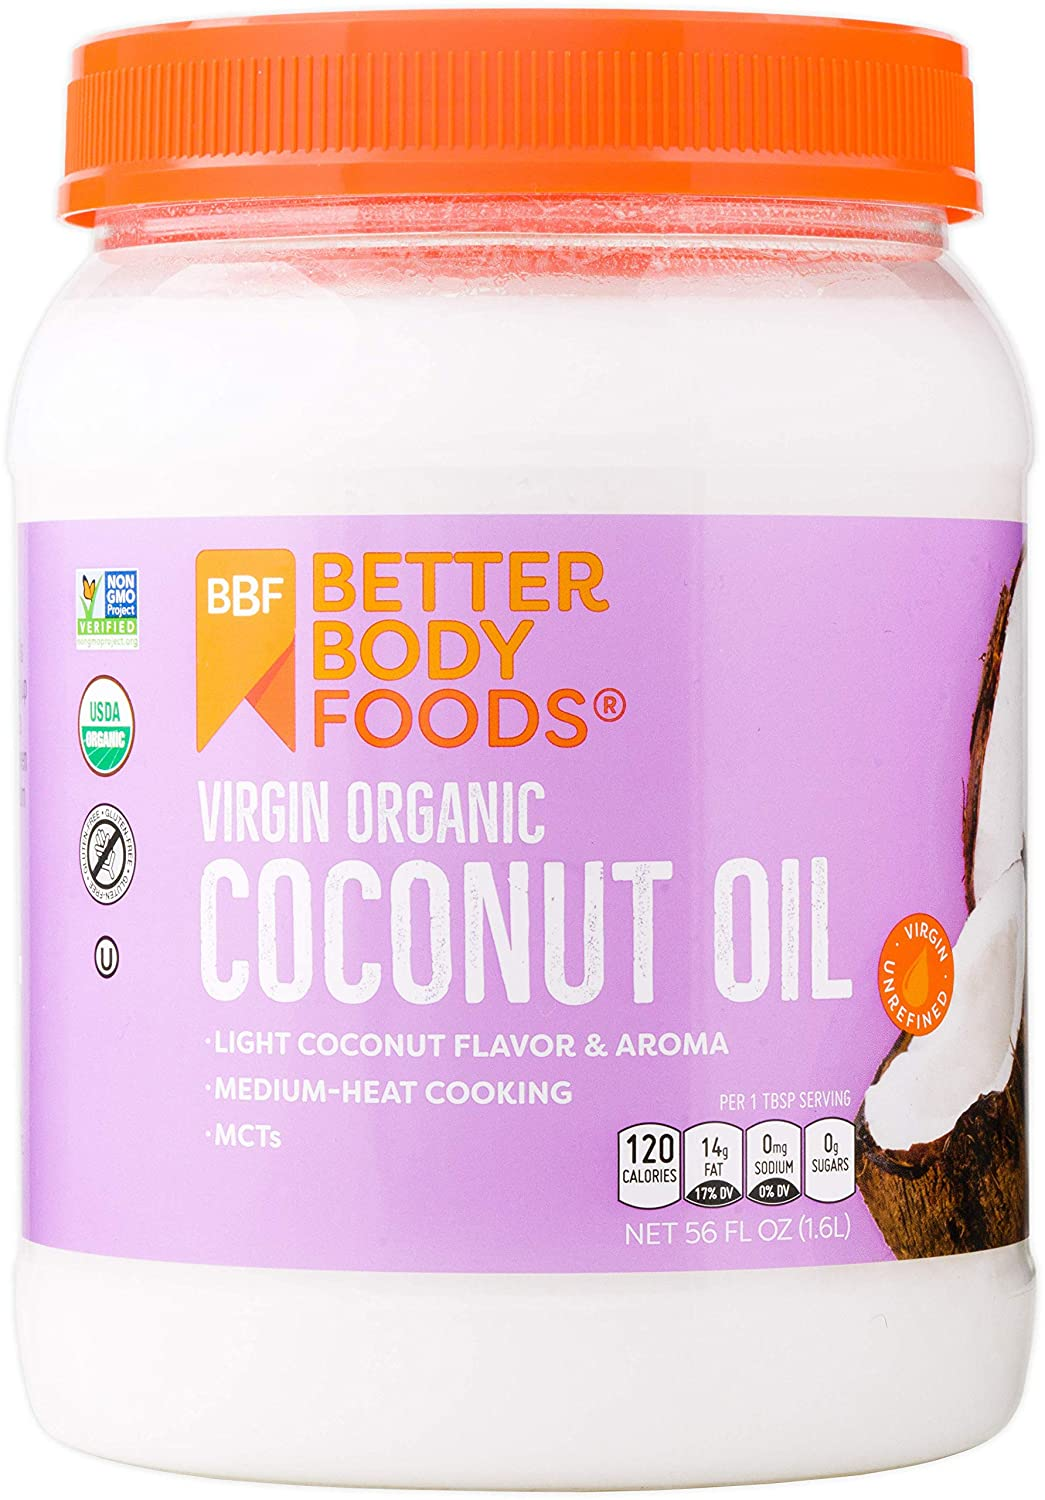 BetterBody Foods Organic Virgin Coconut Oil — Cold-Pressed and Unrefined Coconut Oil, Medium Temperature Cooking Oil, Great Alternative To Butter, Light Coconut Flavor and Aroma, 56 Ounce